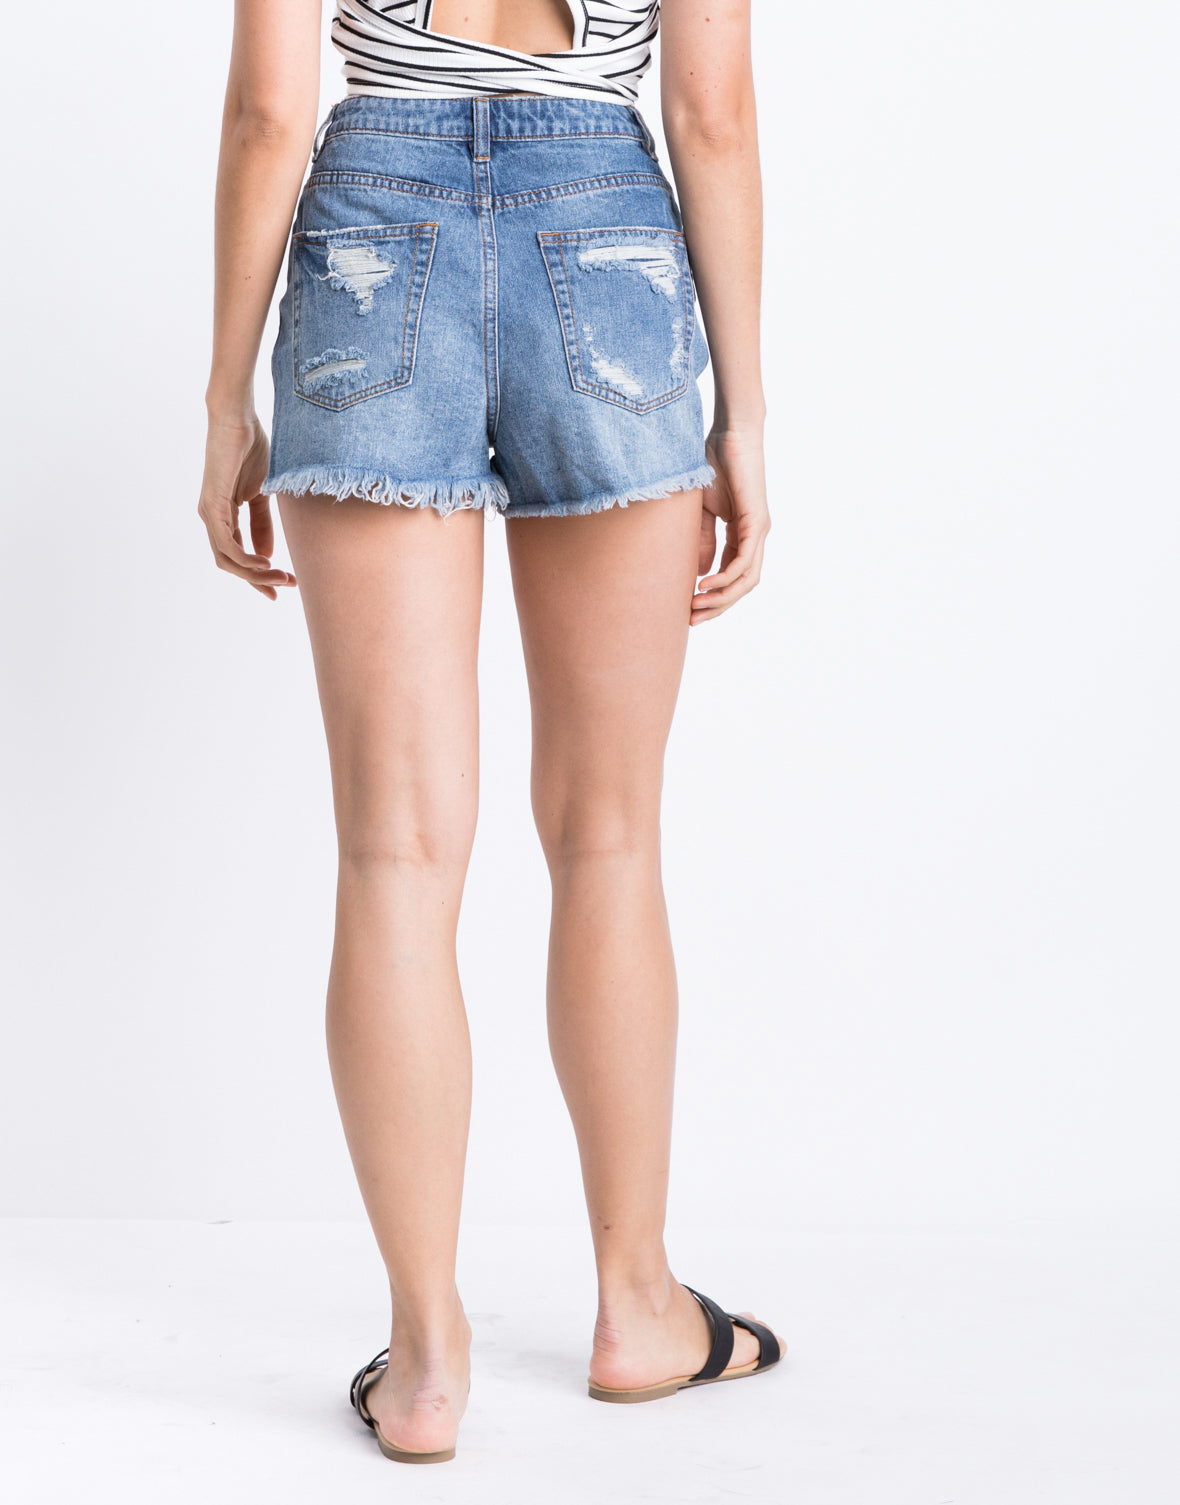 Zipped In Denim Shorts